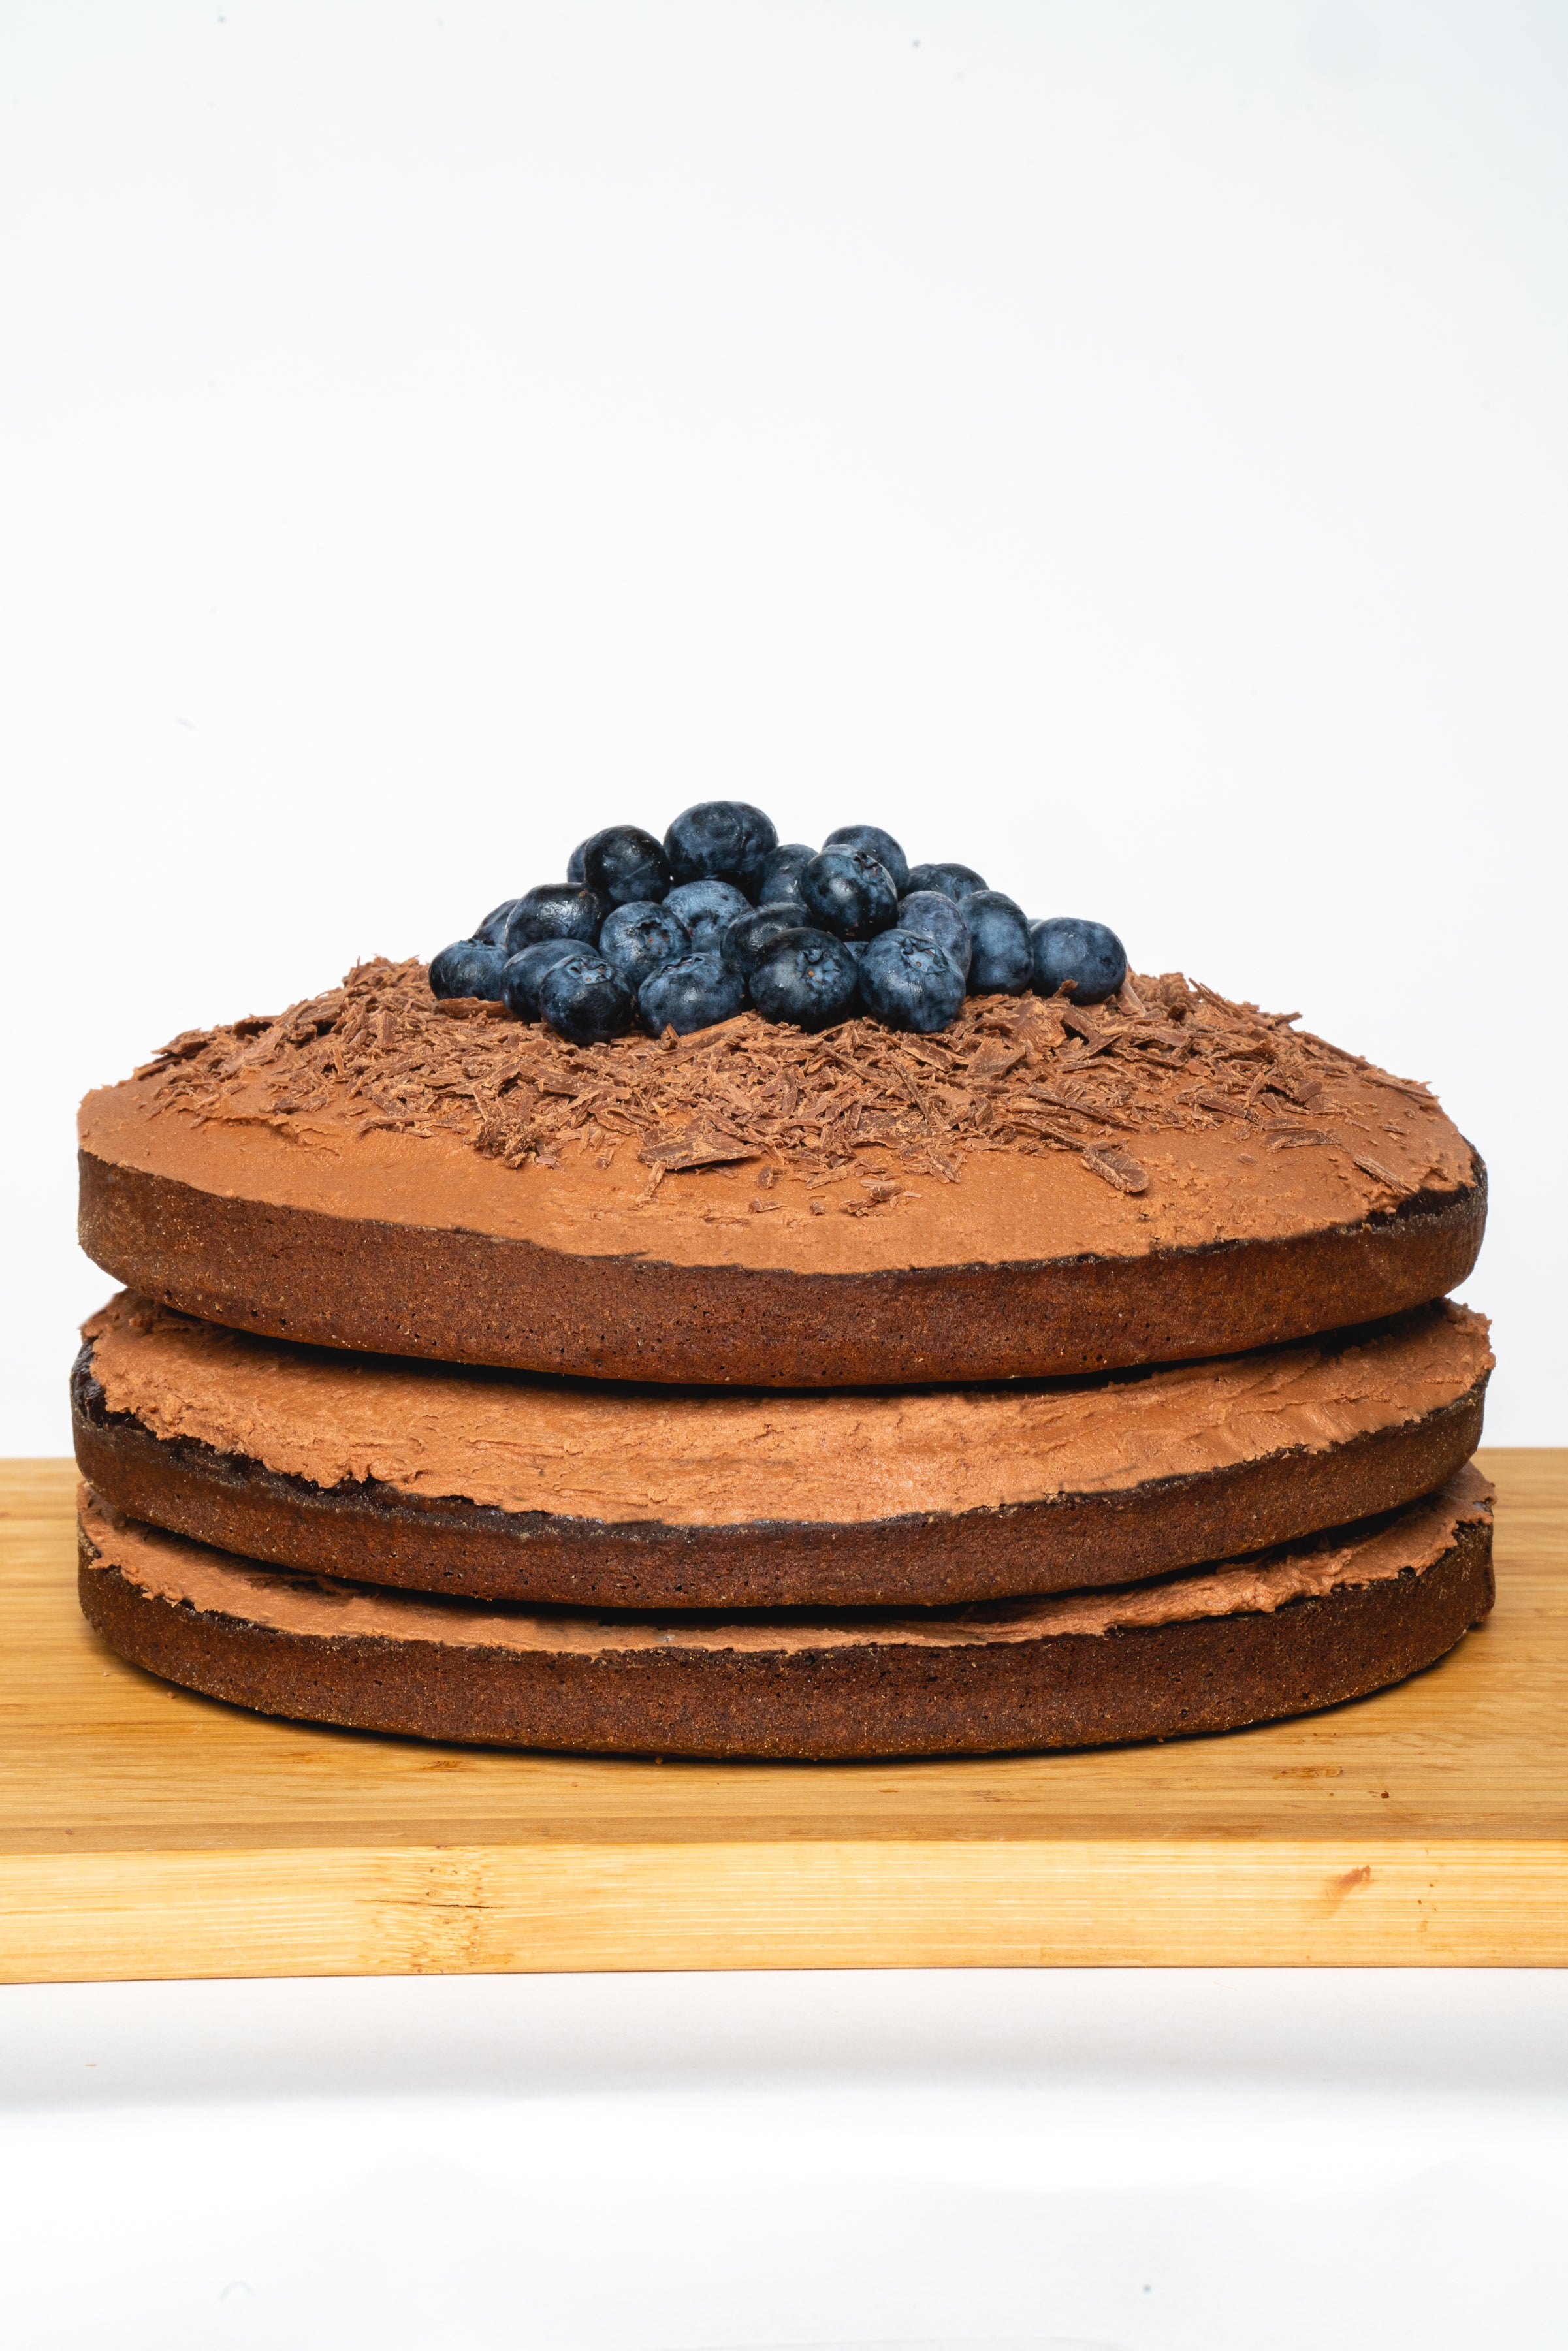 Keto Chocolate Cake Baking Mix